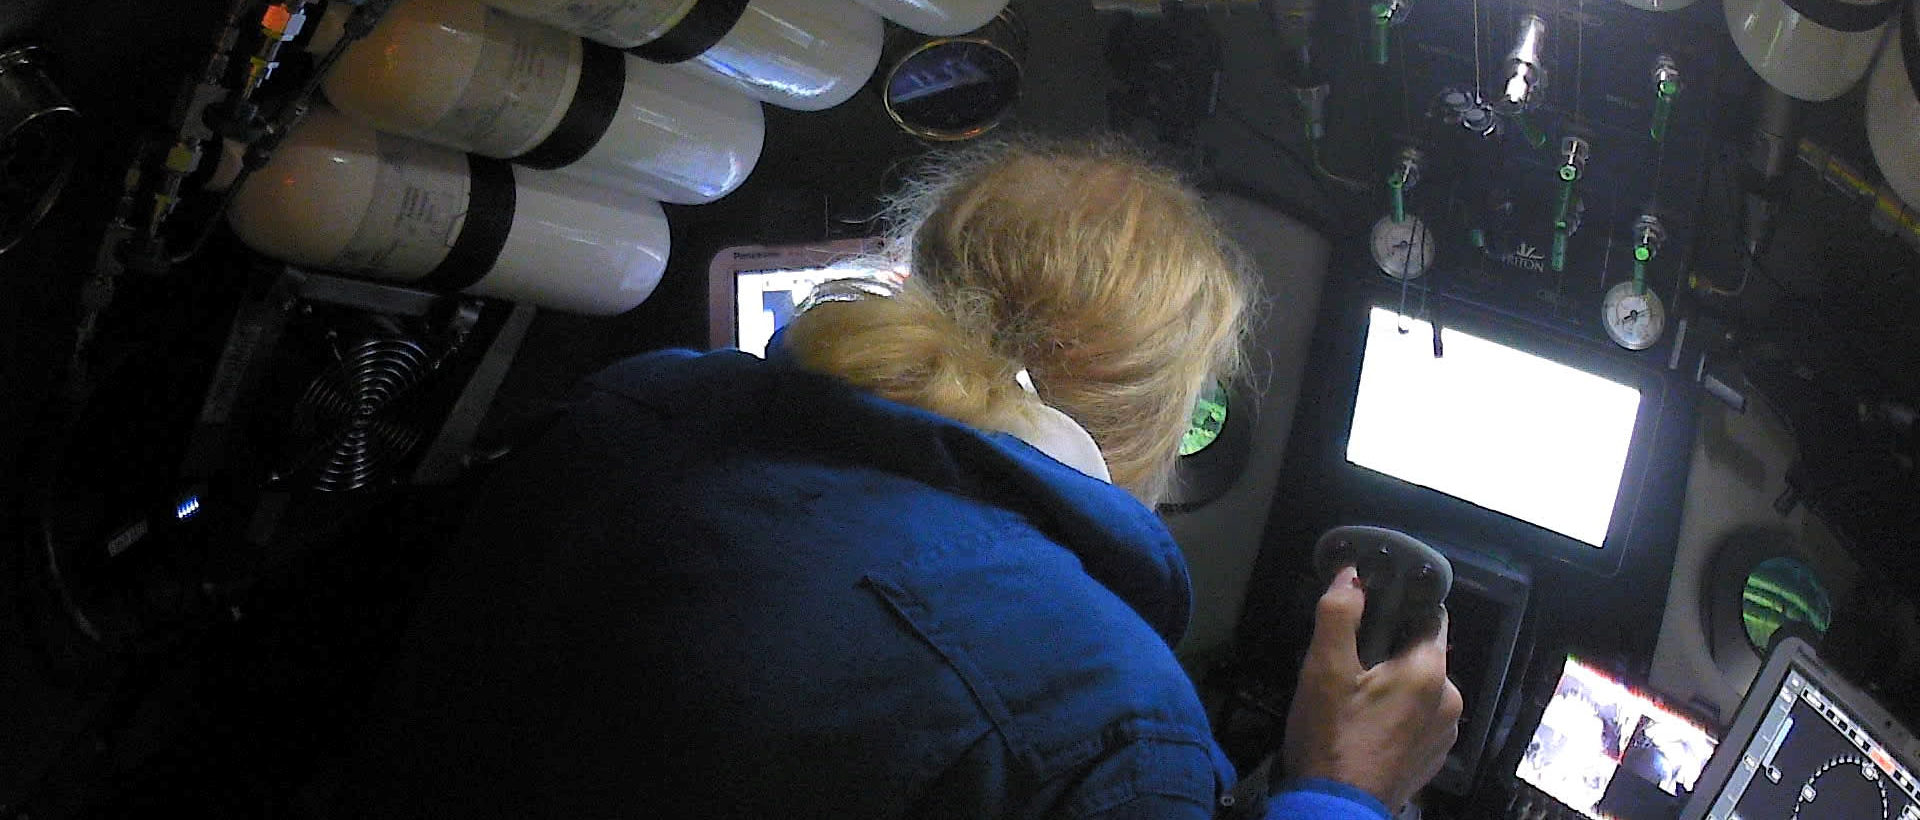 Undersea explorer Victor Vescovo pilots the submarine DSV Limiting Factor in the Pacific Ocean's Mariana Trench in an undated still image from video released by the Discovery Channel May 13, 2019. Atlantic Productions for Discovery Channel/Handout via REUTERS. ATTENTION EDITORS - THIS IMAGE WAS PROVIDED BY A THIRD PARTY. NO ARCHIVE. NO RESALES. MANDATORY CREDIT. - RC1A1E750D40